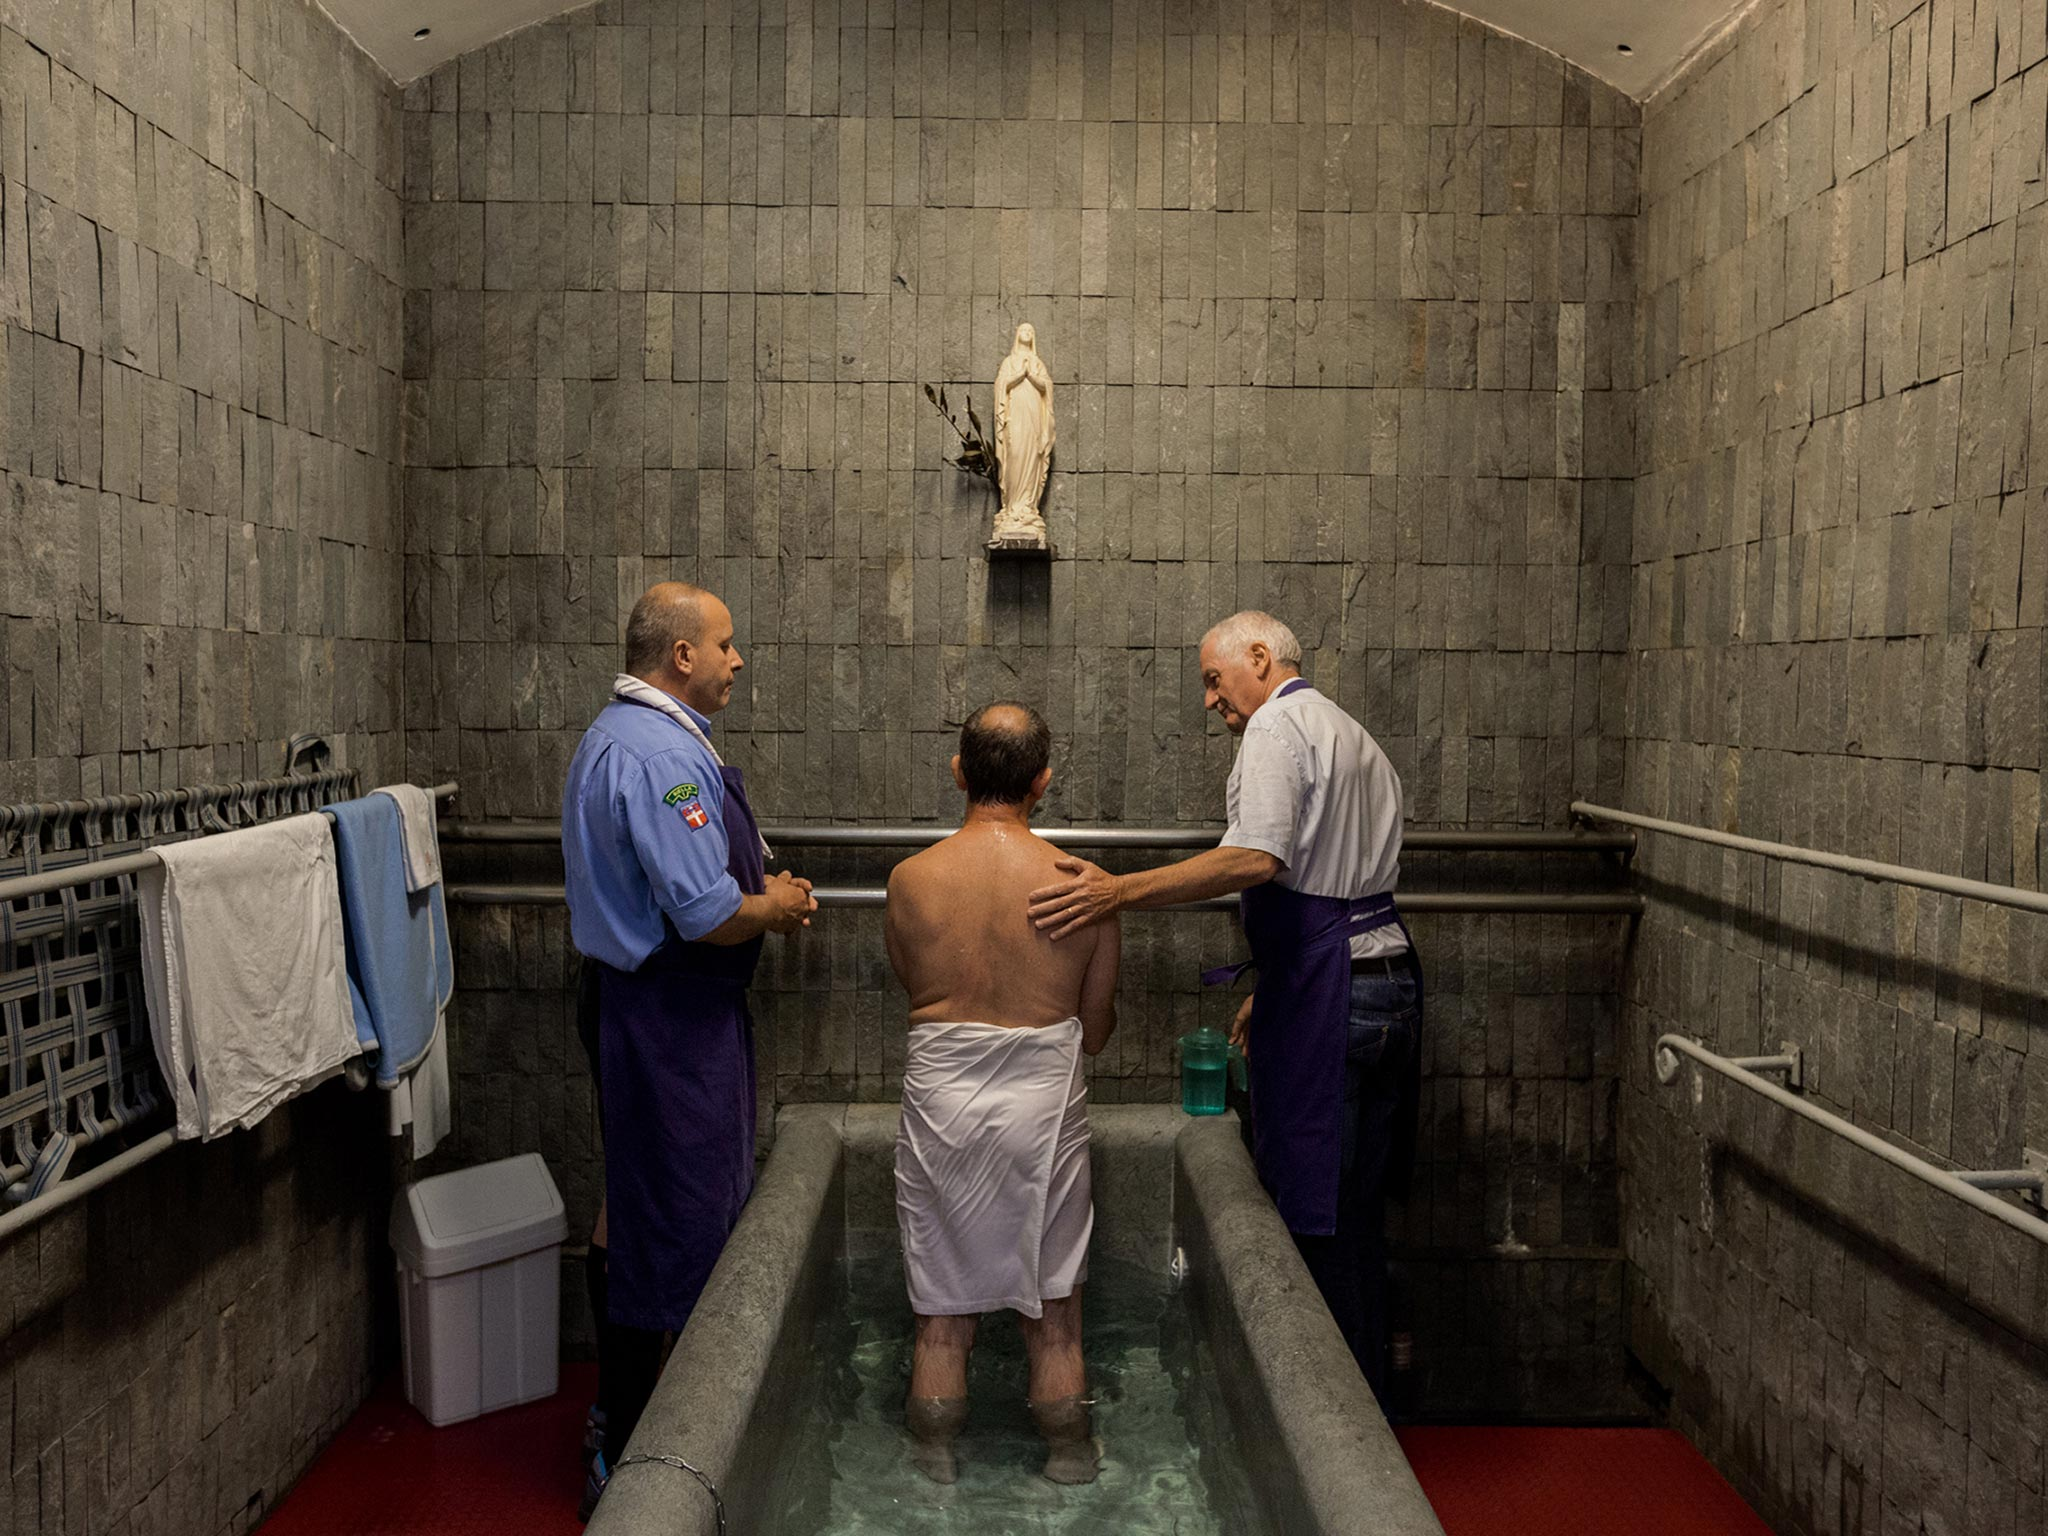 Volunteers help a man bathe in the ice-cold, spring-fed waters of Lourdes. The Massabielle Grotto has been the font of Lourdes's fame since 1858, when Mary is said to have appeared before a teenage girl and asked her to dig a spring in the hard earth. A small puddle soon grew into a pool; eventually it became this sacred water source, visited by some six million pilgrims every year.